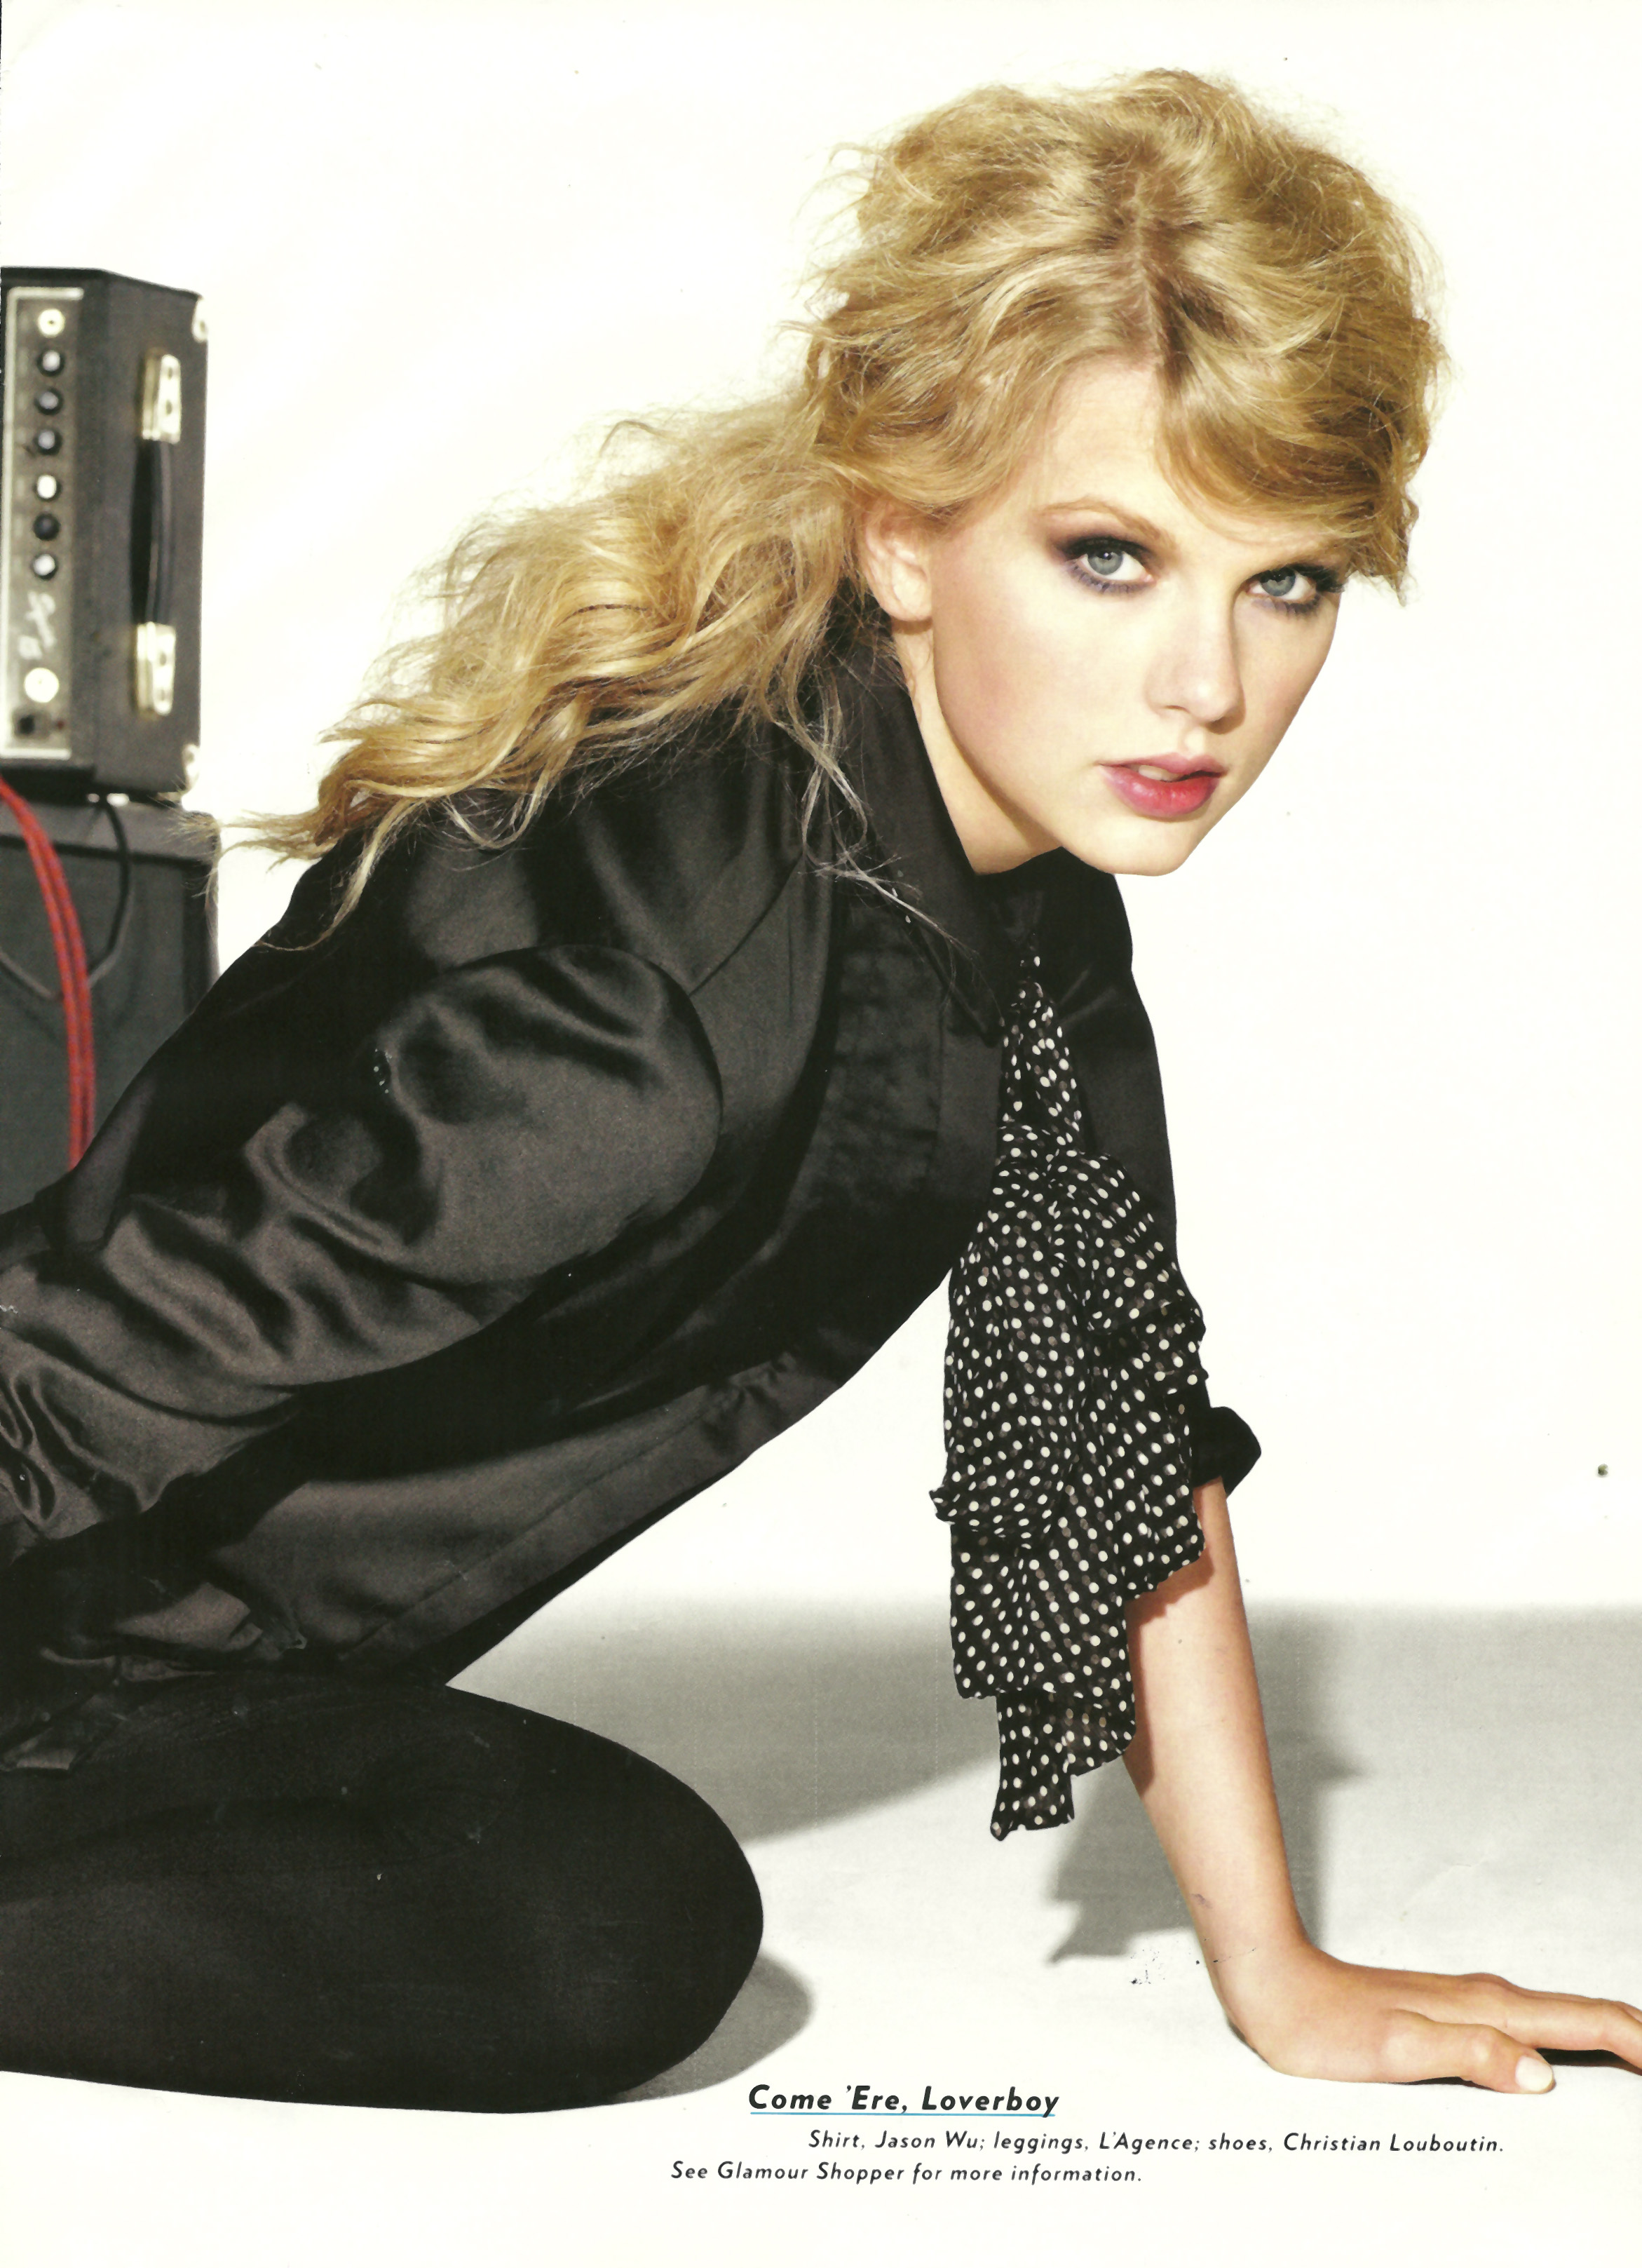 29131_Taylor_Dwift_2010_Glamour_Magazine_December_2010_5_122_237lo.jpg